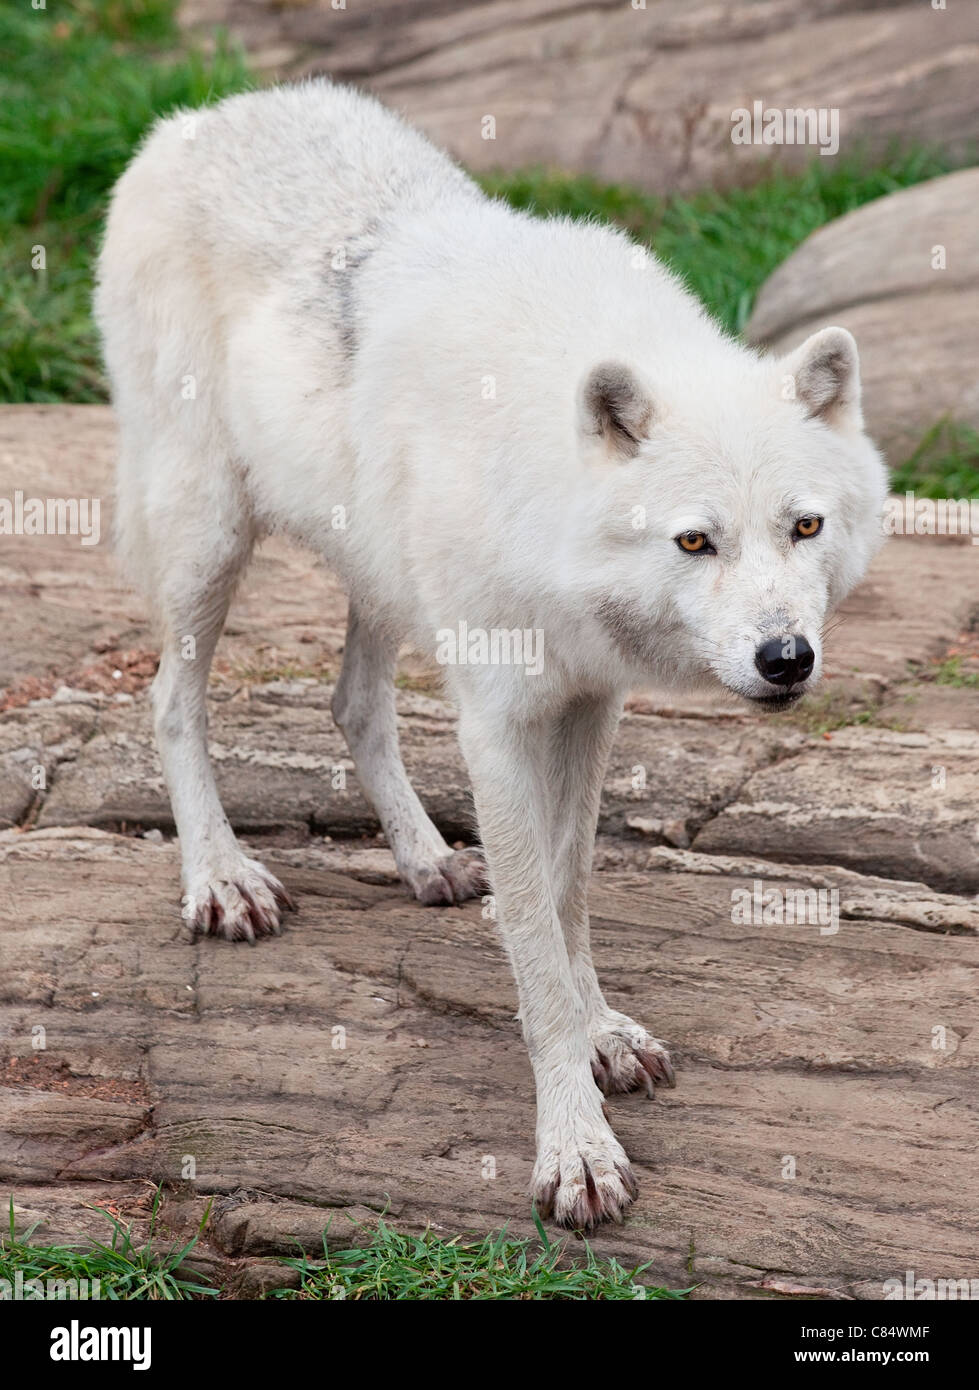 An arctic wolf is standing on rocks. - Stock Image